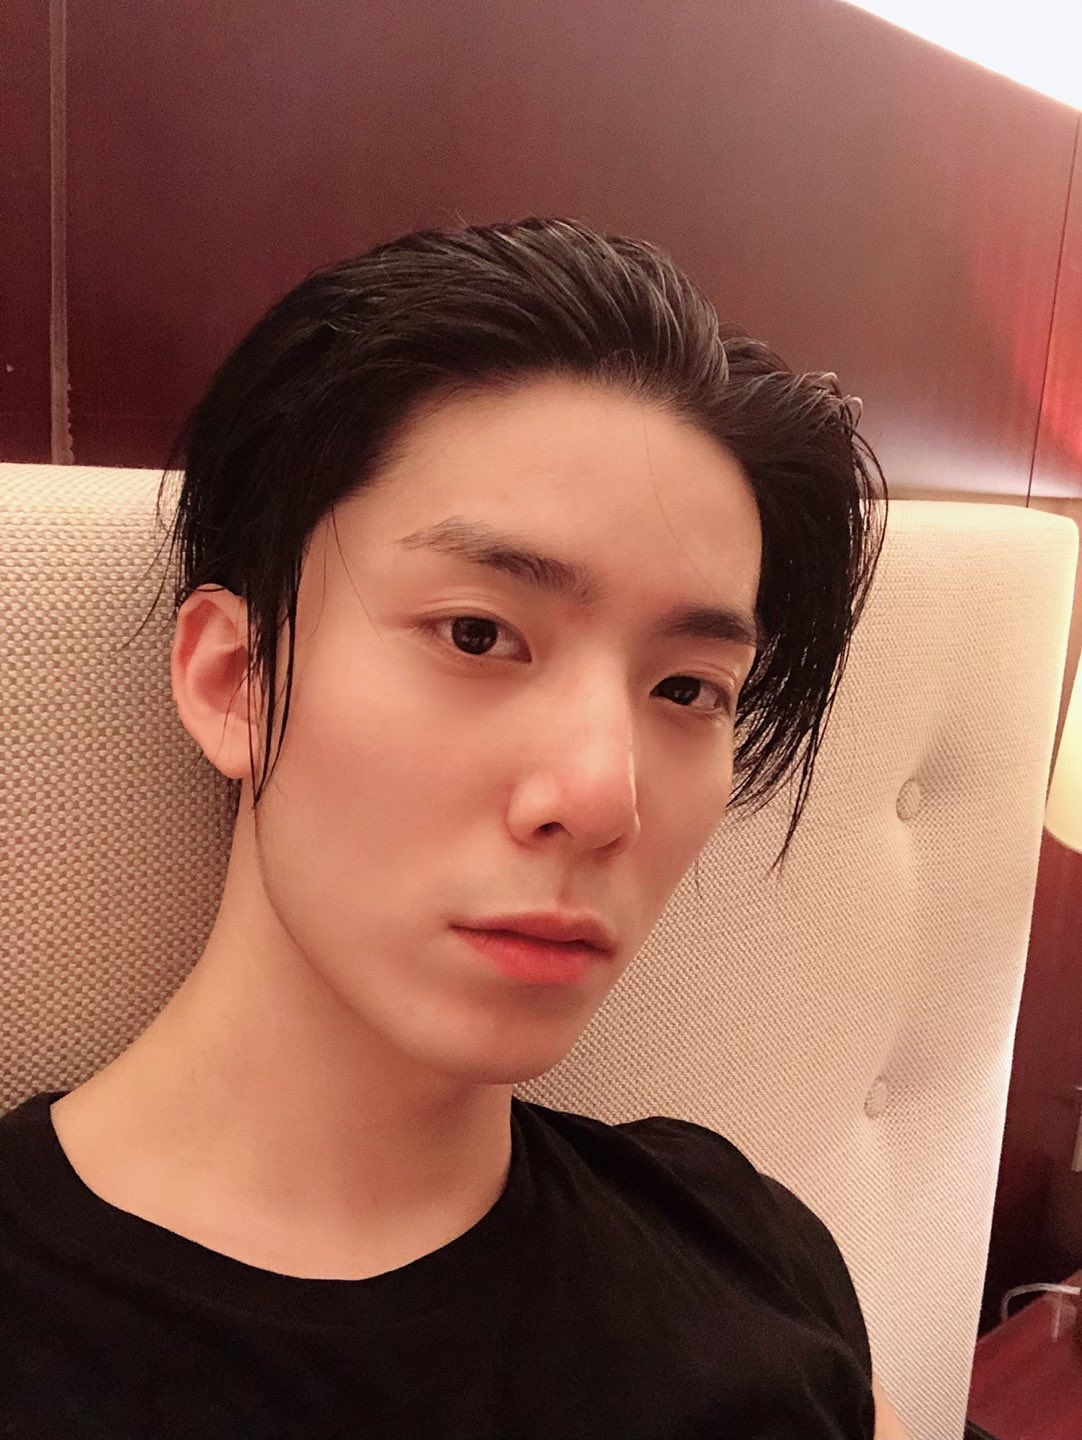 SF9's HwiYoung Cut His Signature Long Hair, Transforms Into An Even Manlier Idol